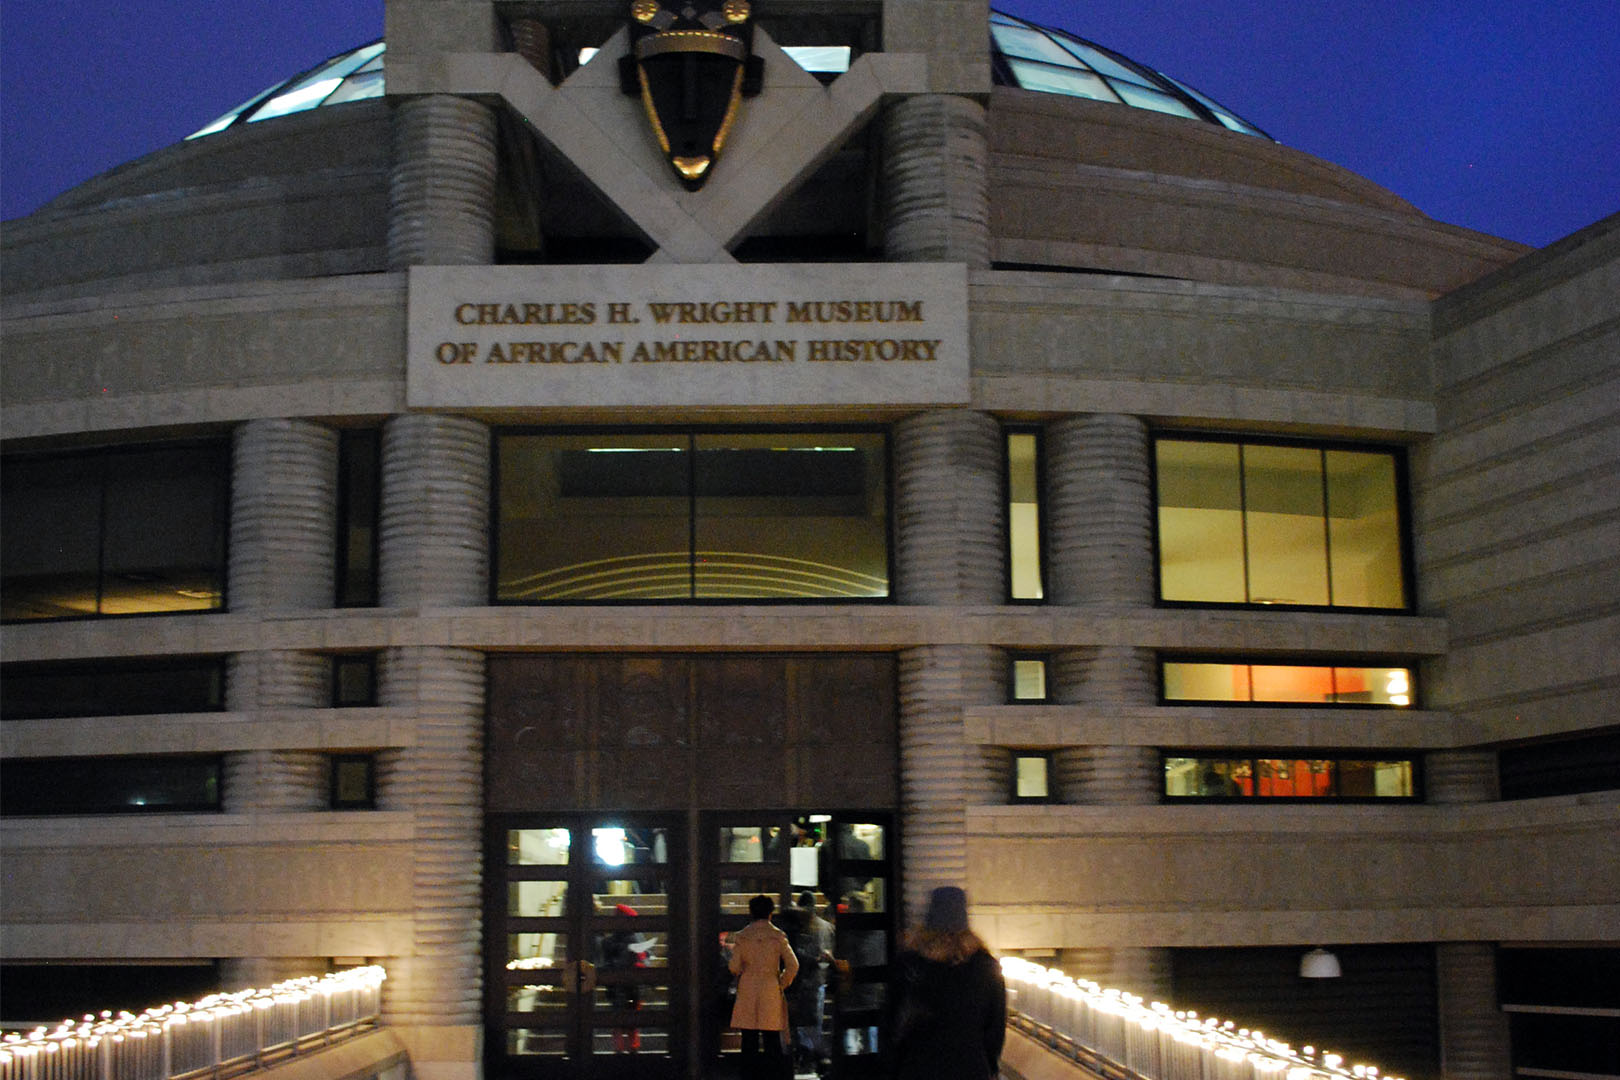 Charles H. Wright Museum of African American History